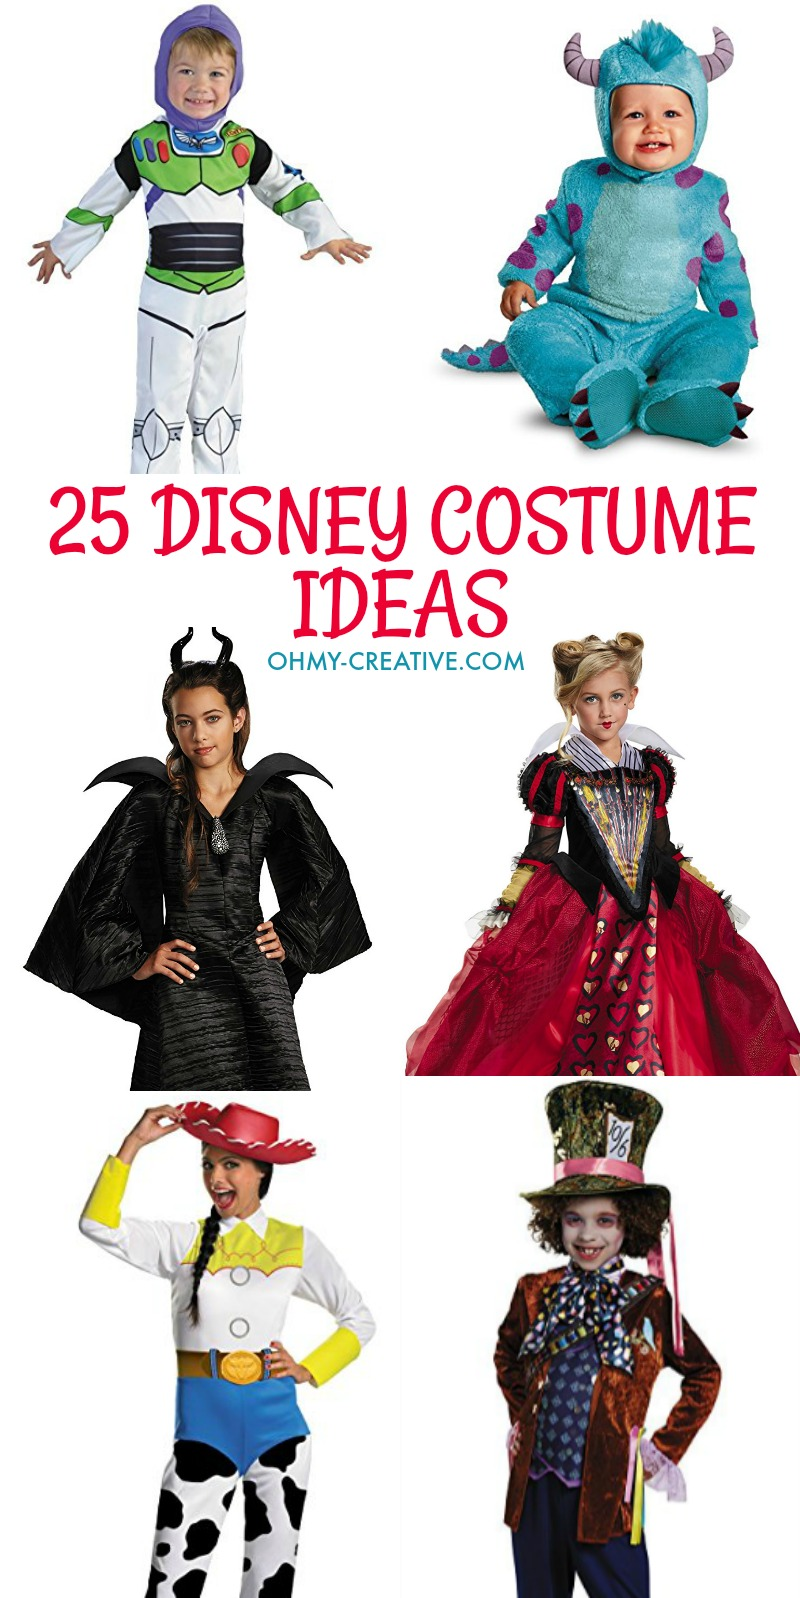 25 Disney Costume Ideas | OHMY-CREATIVE.COM | Disney Halloween Costumes | Disney  sc 1 st  Oh My Creative & 25 Disney Costume Ideas On Amazon - Oh My Creative